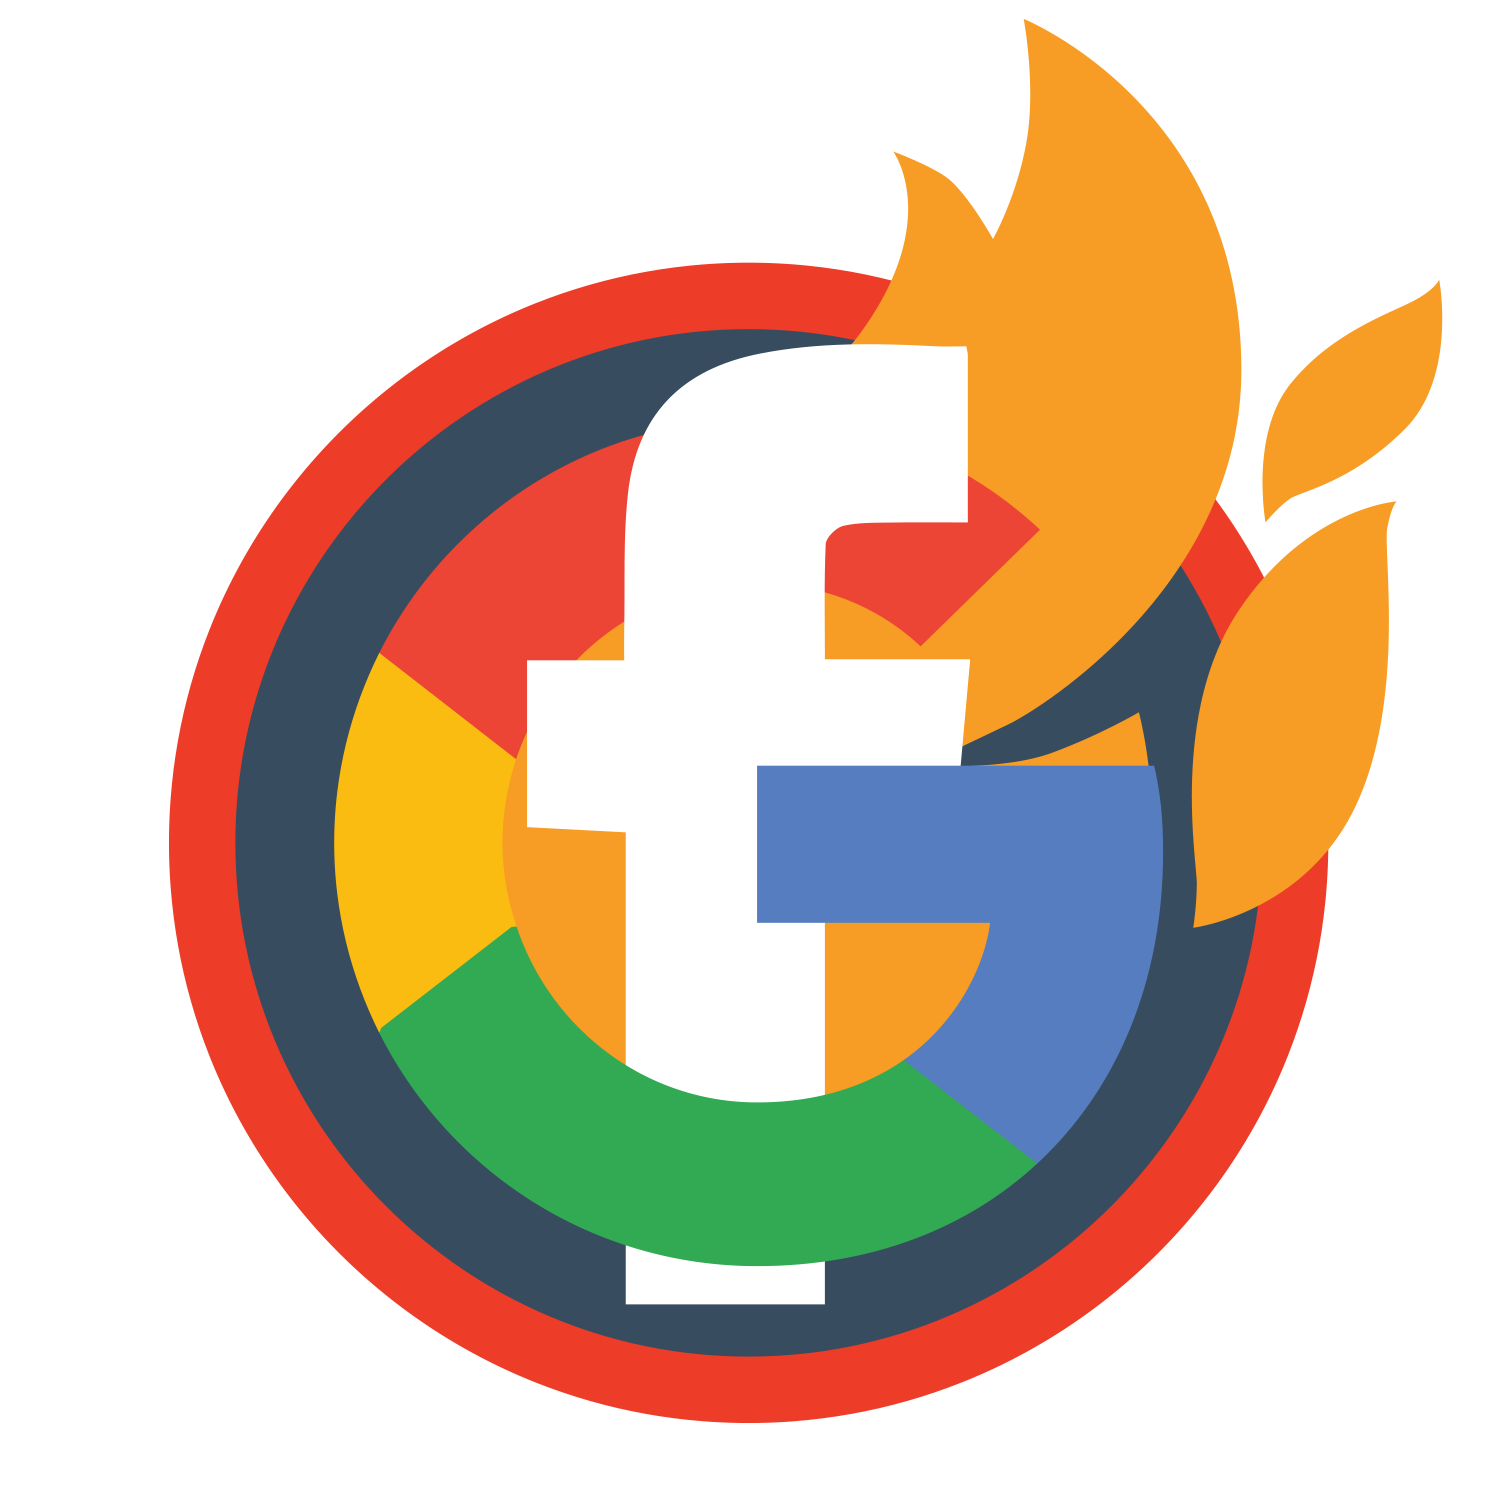 new product feature facebook api conversion